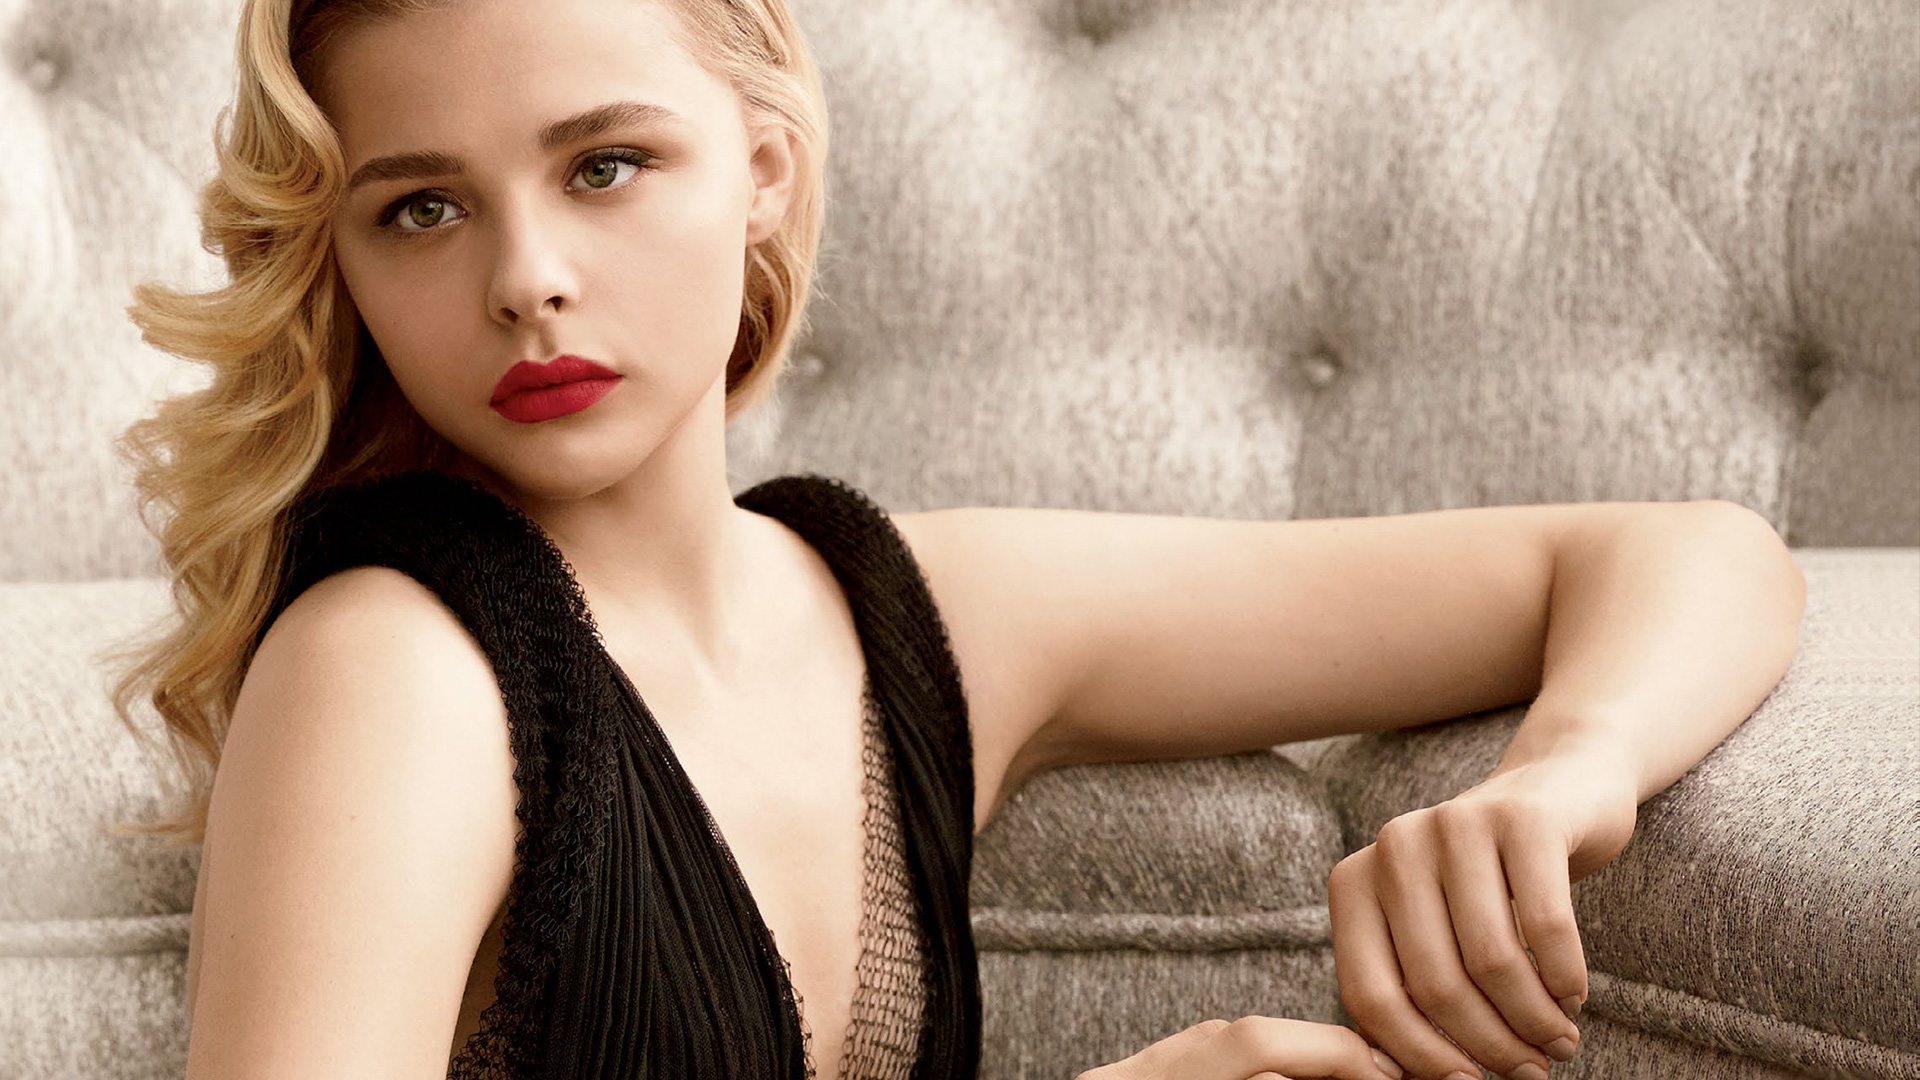 Chloe-Moretz-defends-her-attack-on-THAT-Kim-Kardashian-selfie-claiming-people-are-missing-the-b-wallpaper-wp3403888